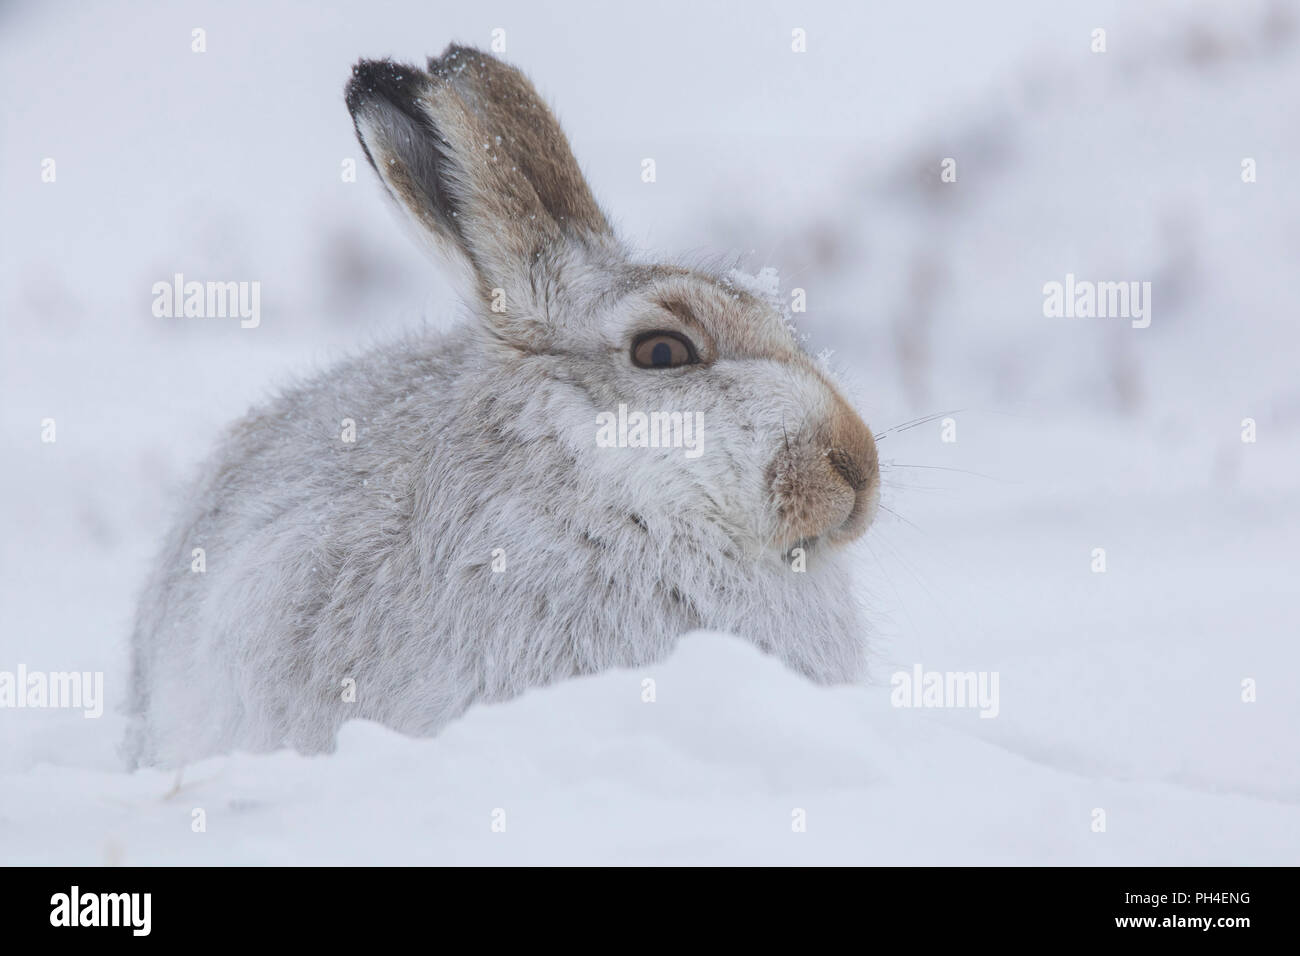 Mountain Hare (Lepus timidus). Adult in white winter coat (pelage) in snow. Cairngorms National Park, Scotland - Stock Image